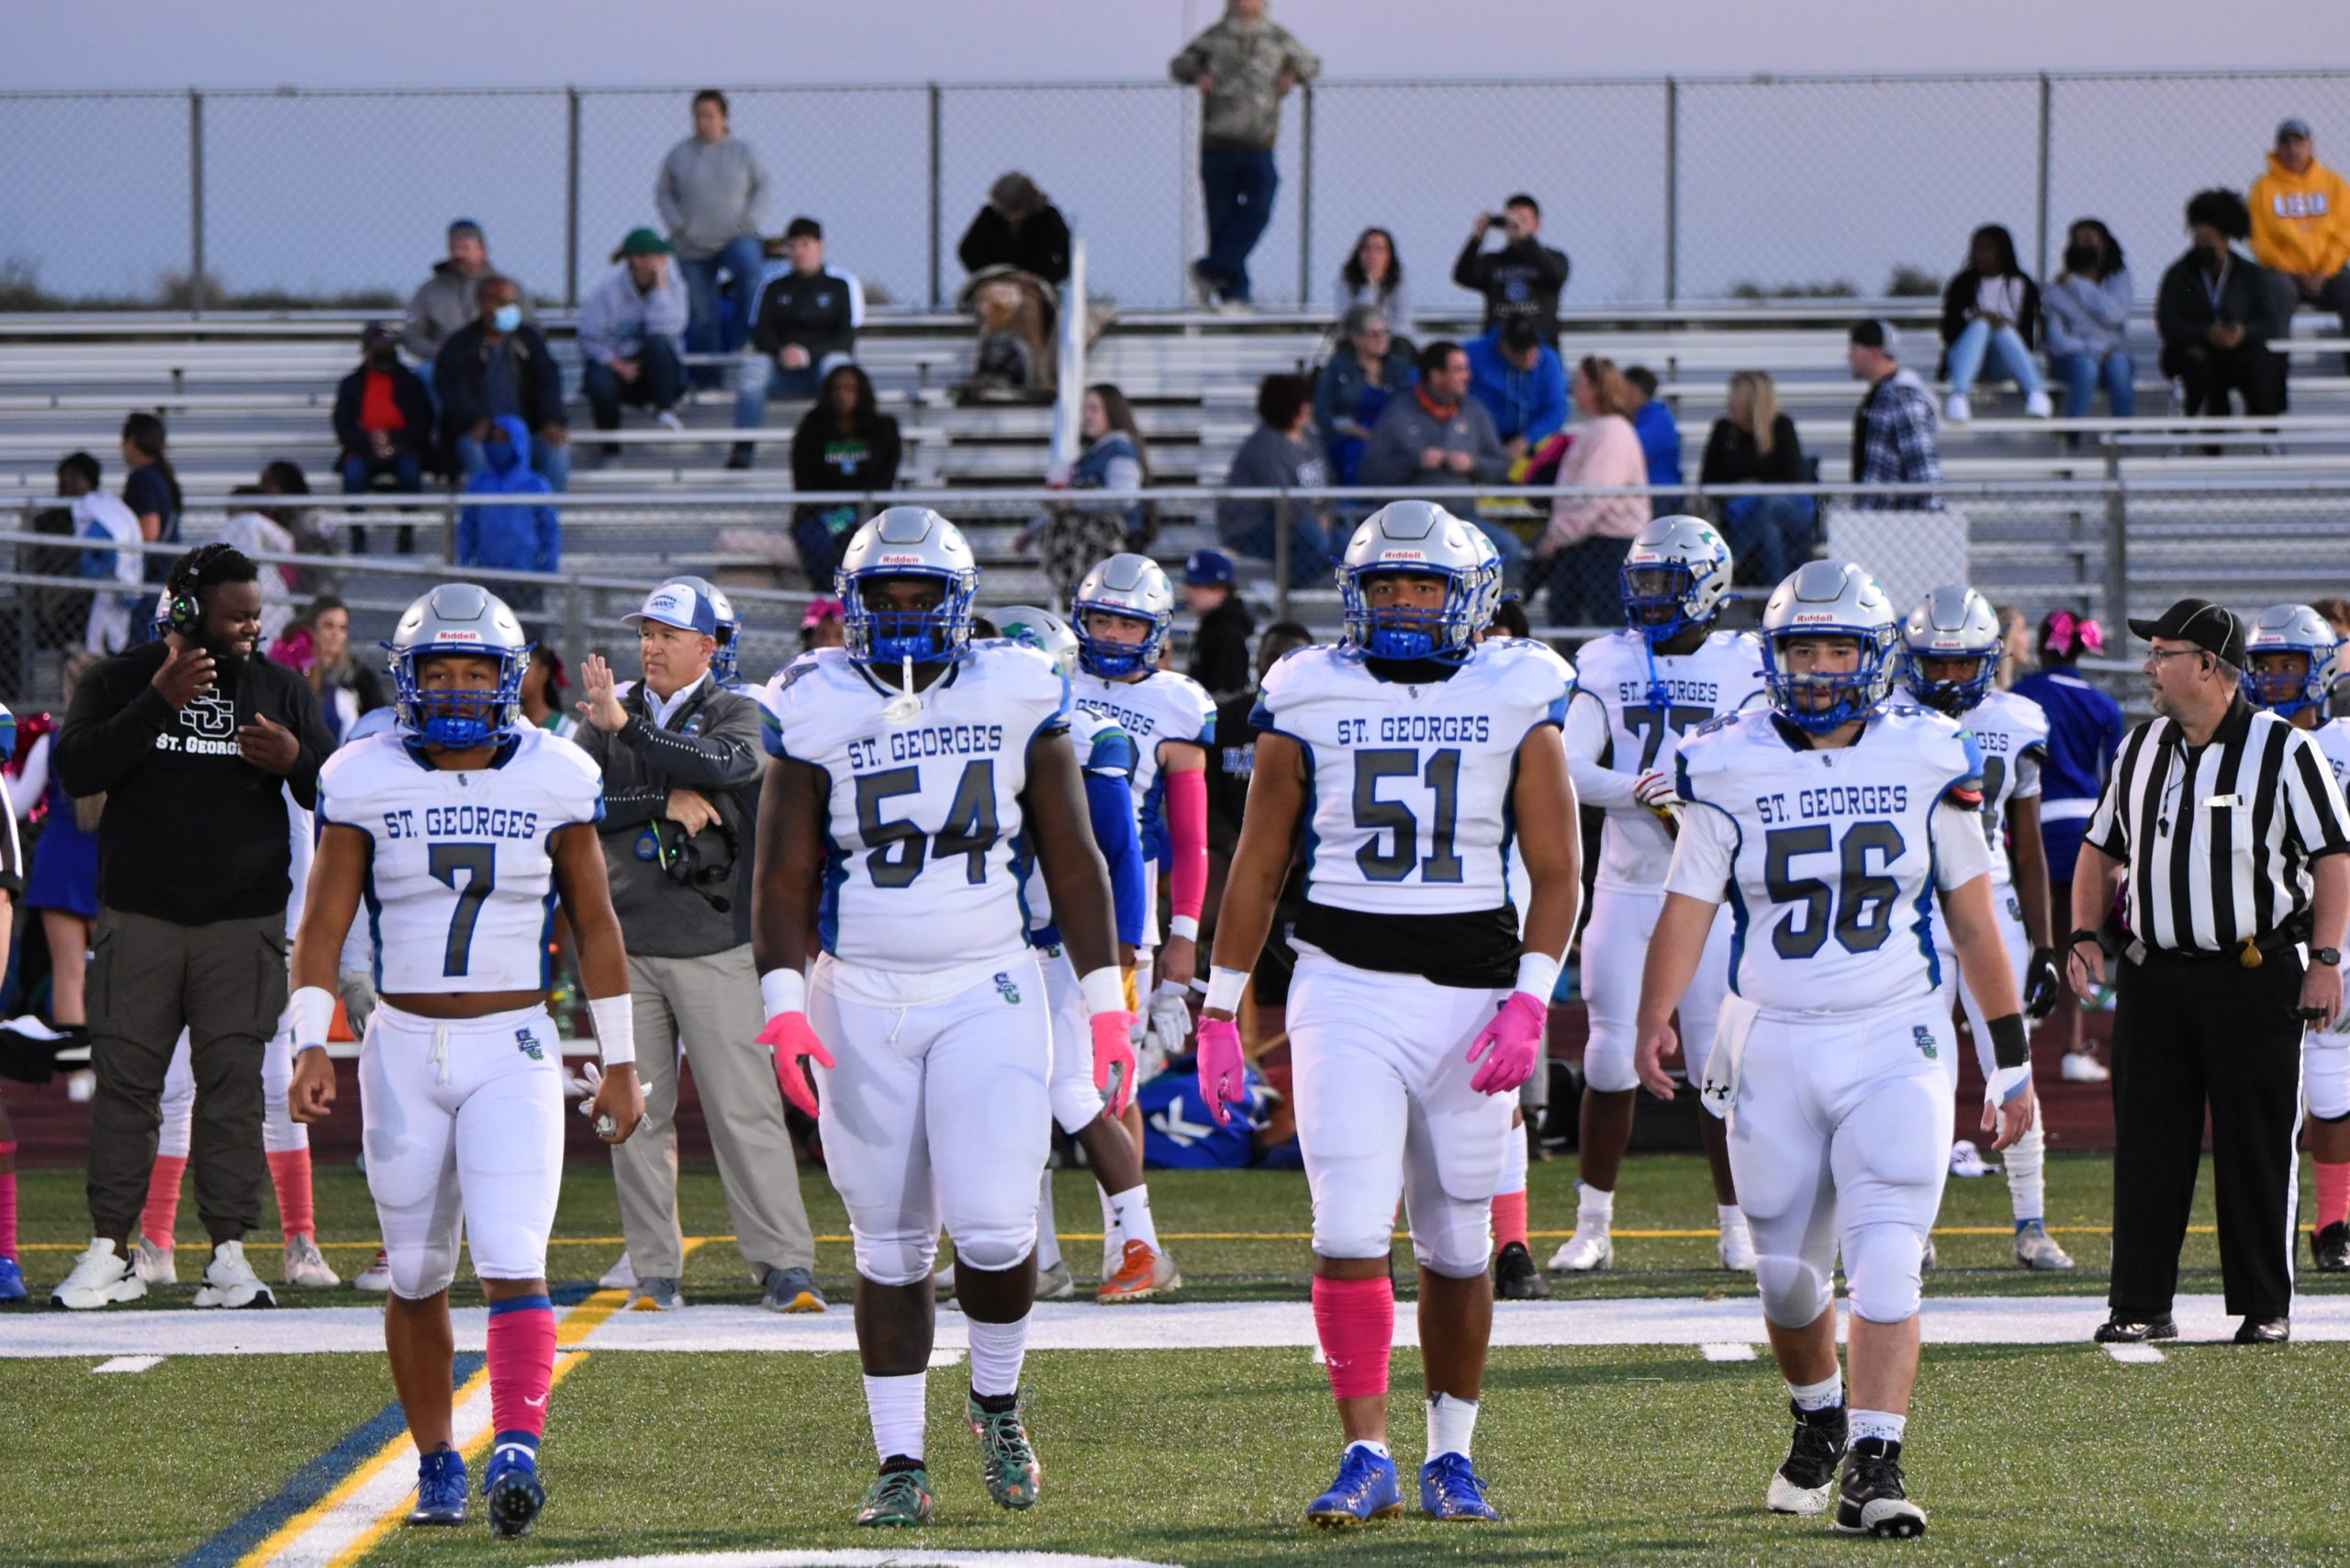 """Featured image for """"St George's gets second straight win with a 35-13 victory over Appoquinimink"""""""